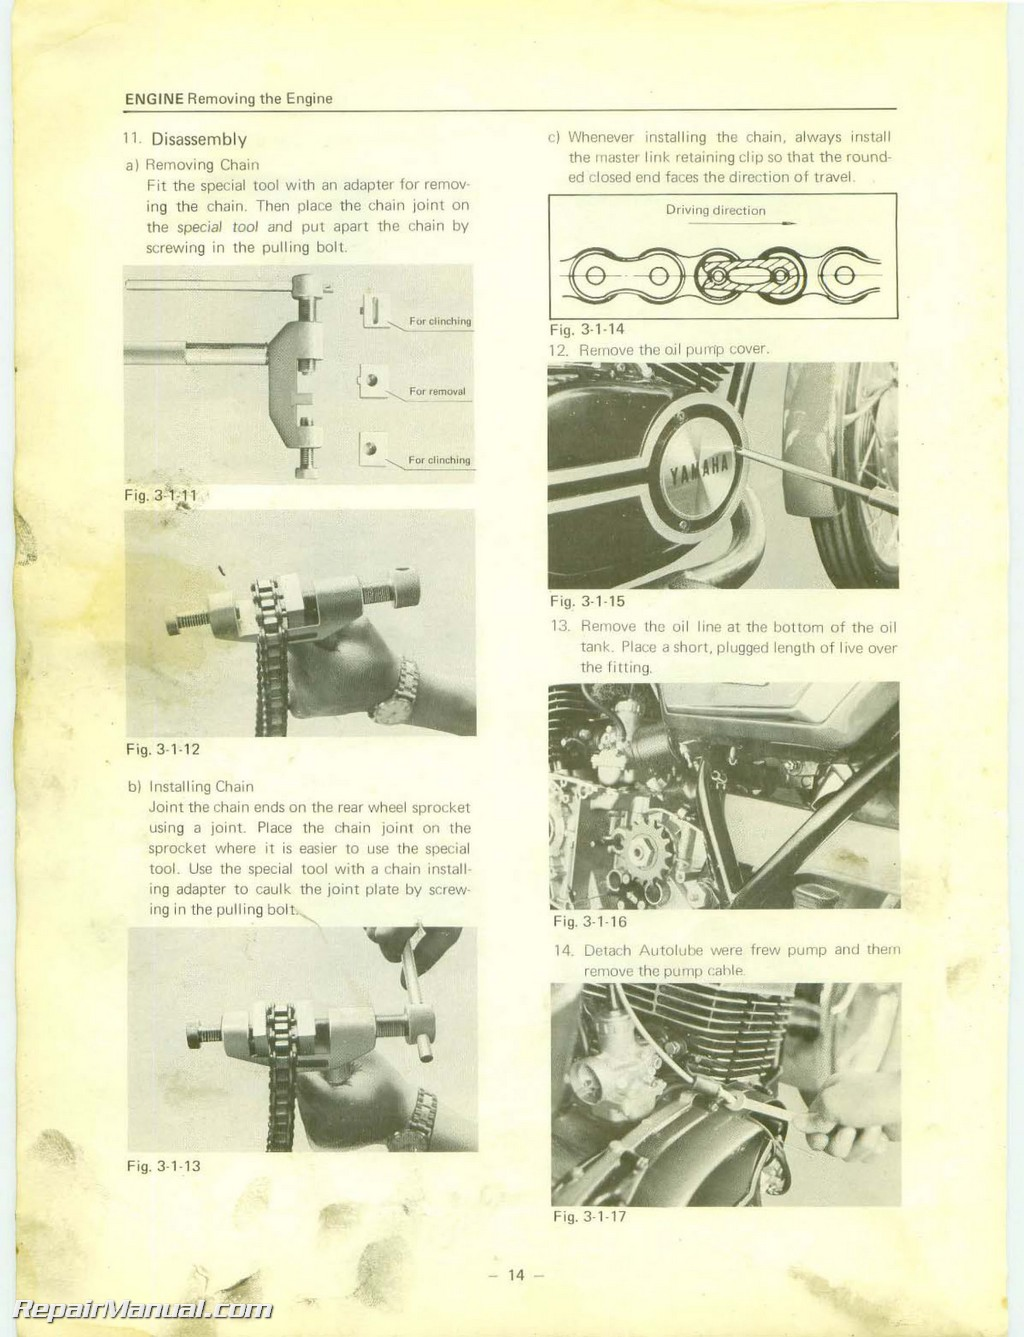 yamaha ds rc rd rd motorcycle service yamaha 1972 ds7 r5c 1973 rd250 rd350 service manual page 2